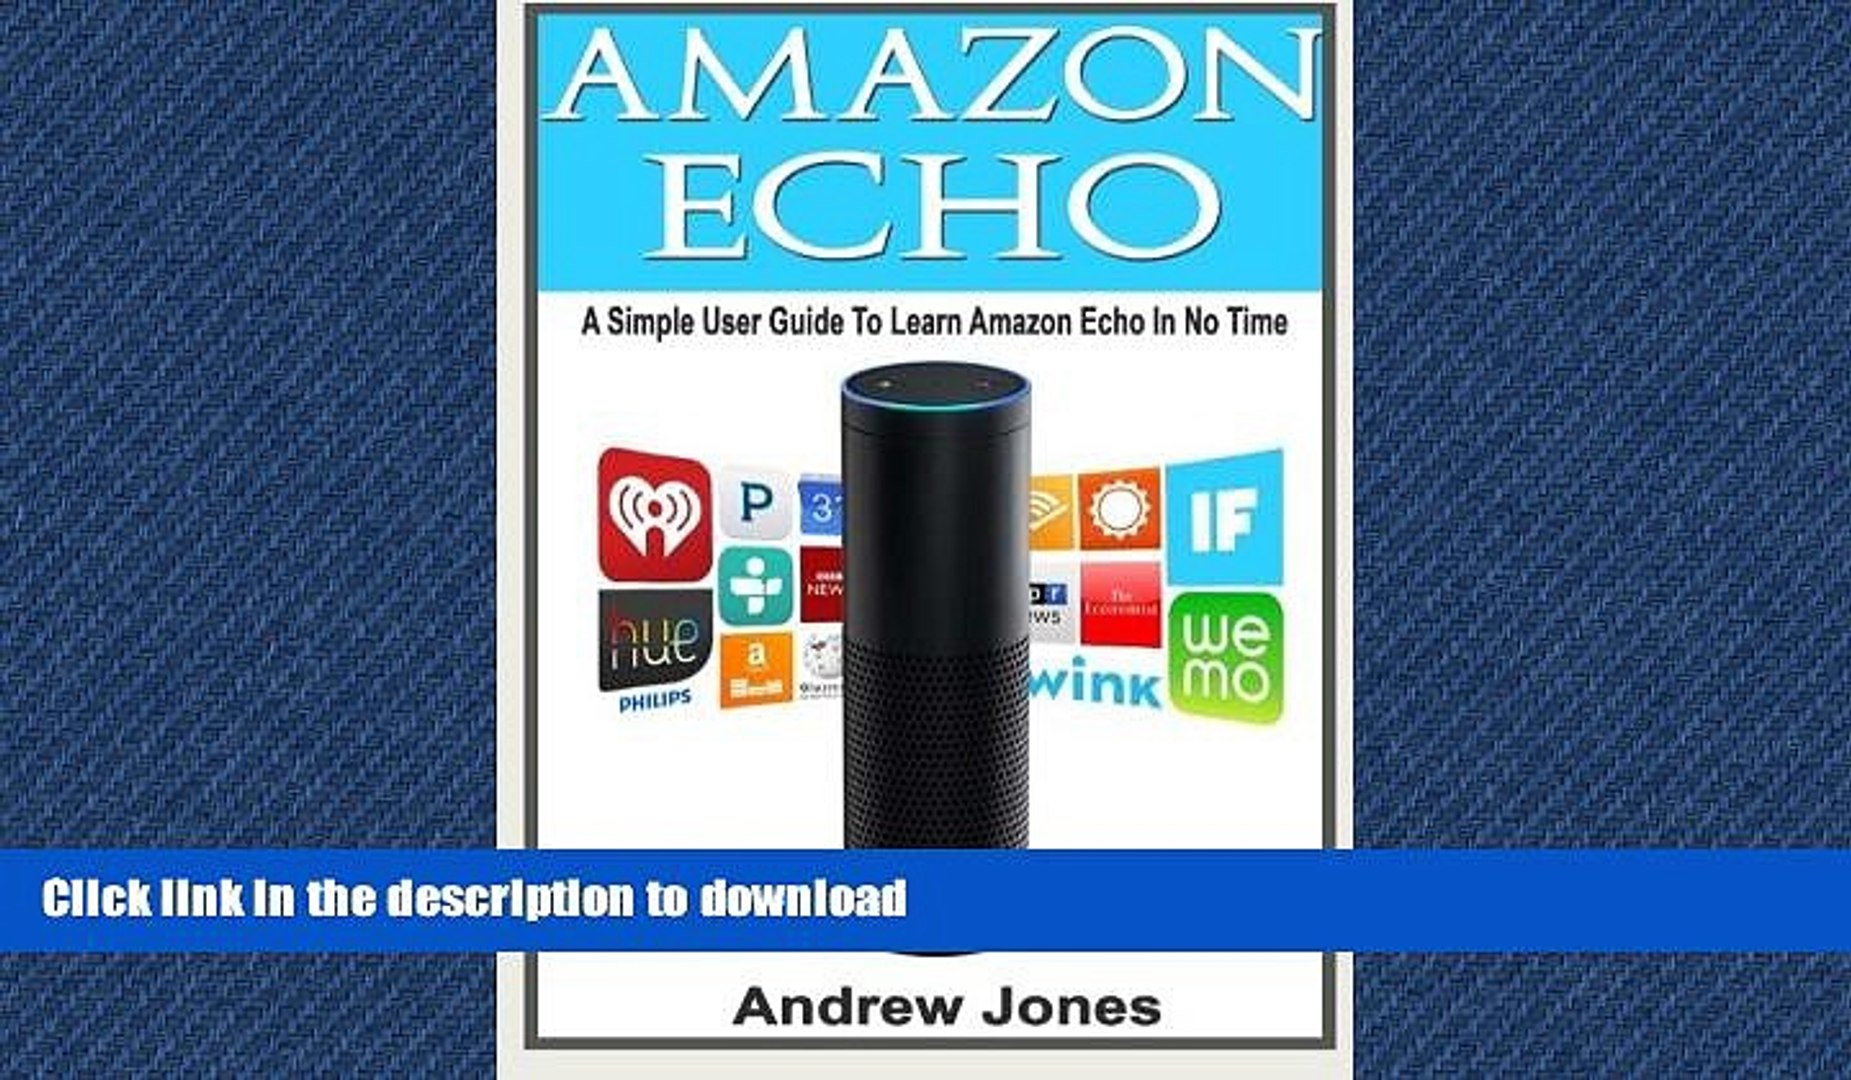 FAVORITE BOOK  Amazon Echo: A Simple User Guide to Learn Amazon Echo and Amazon Prime (Alexa Kit,